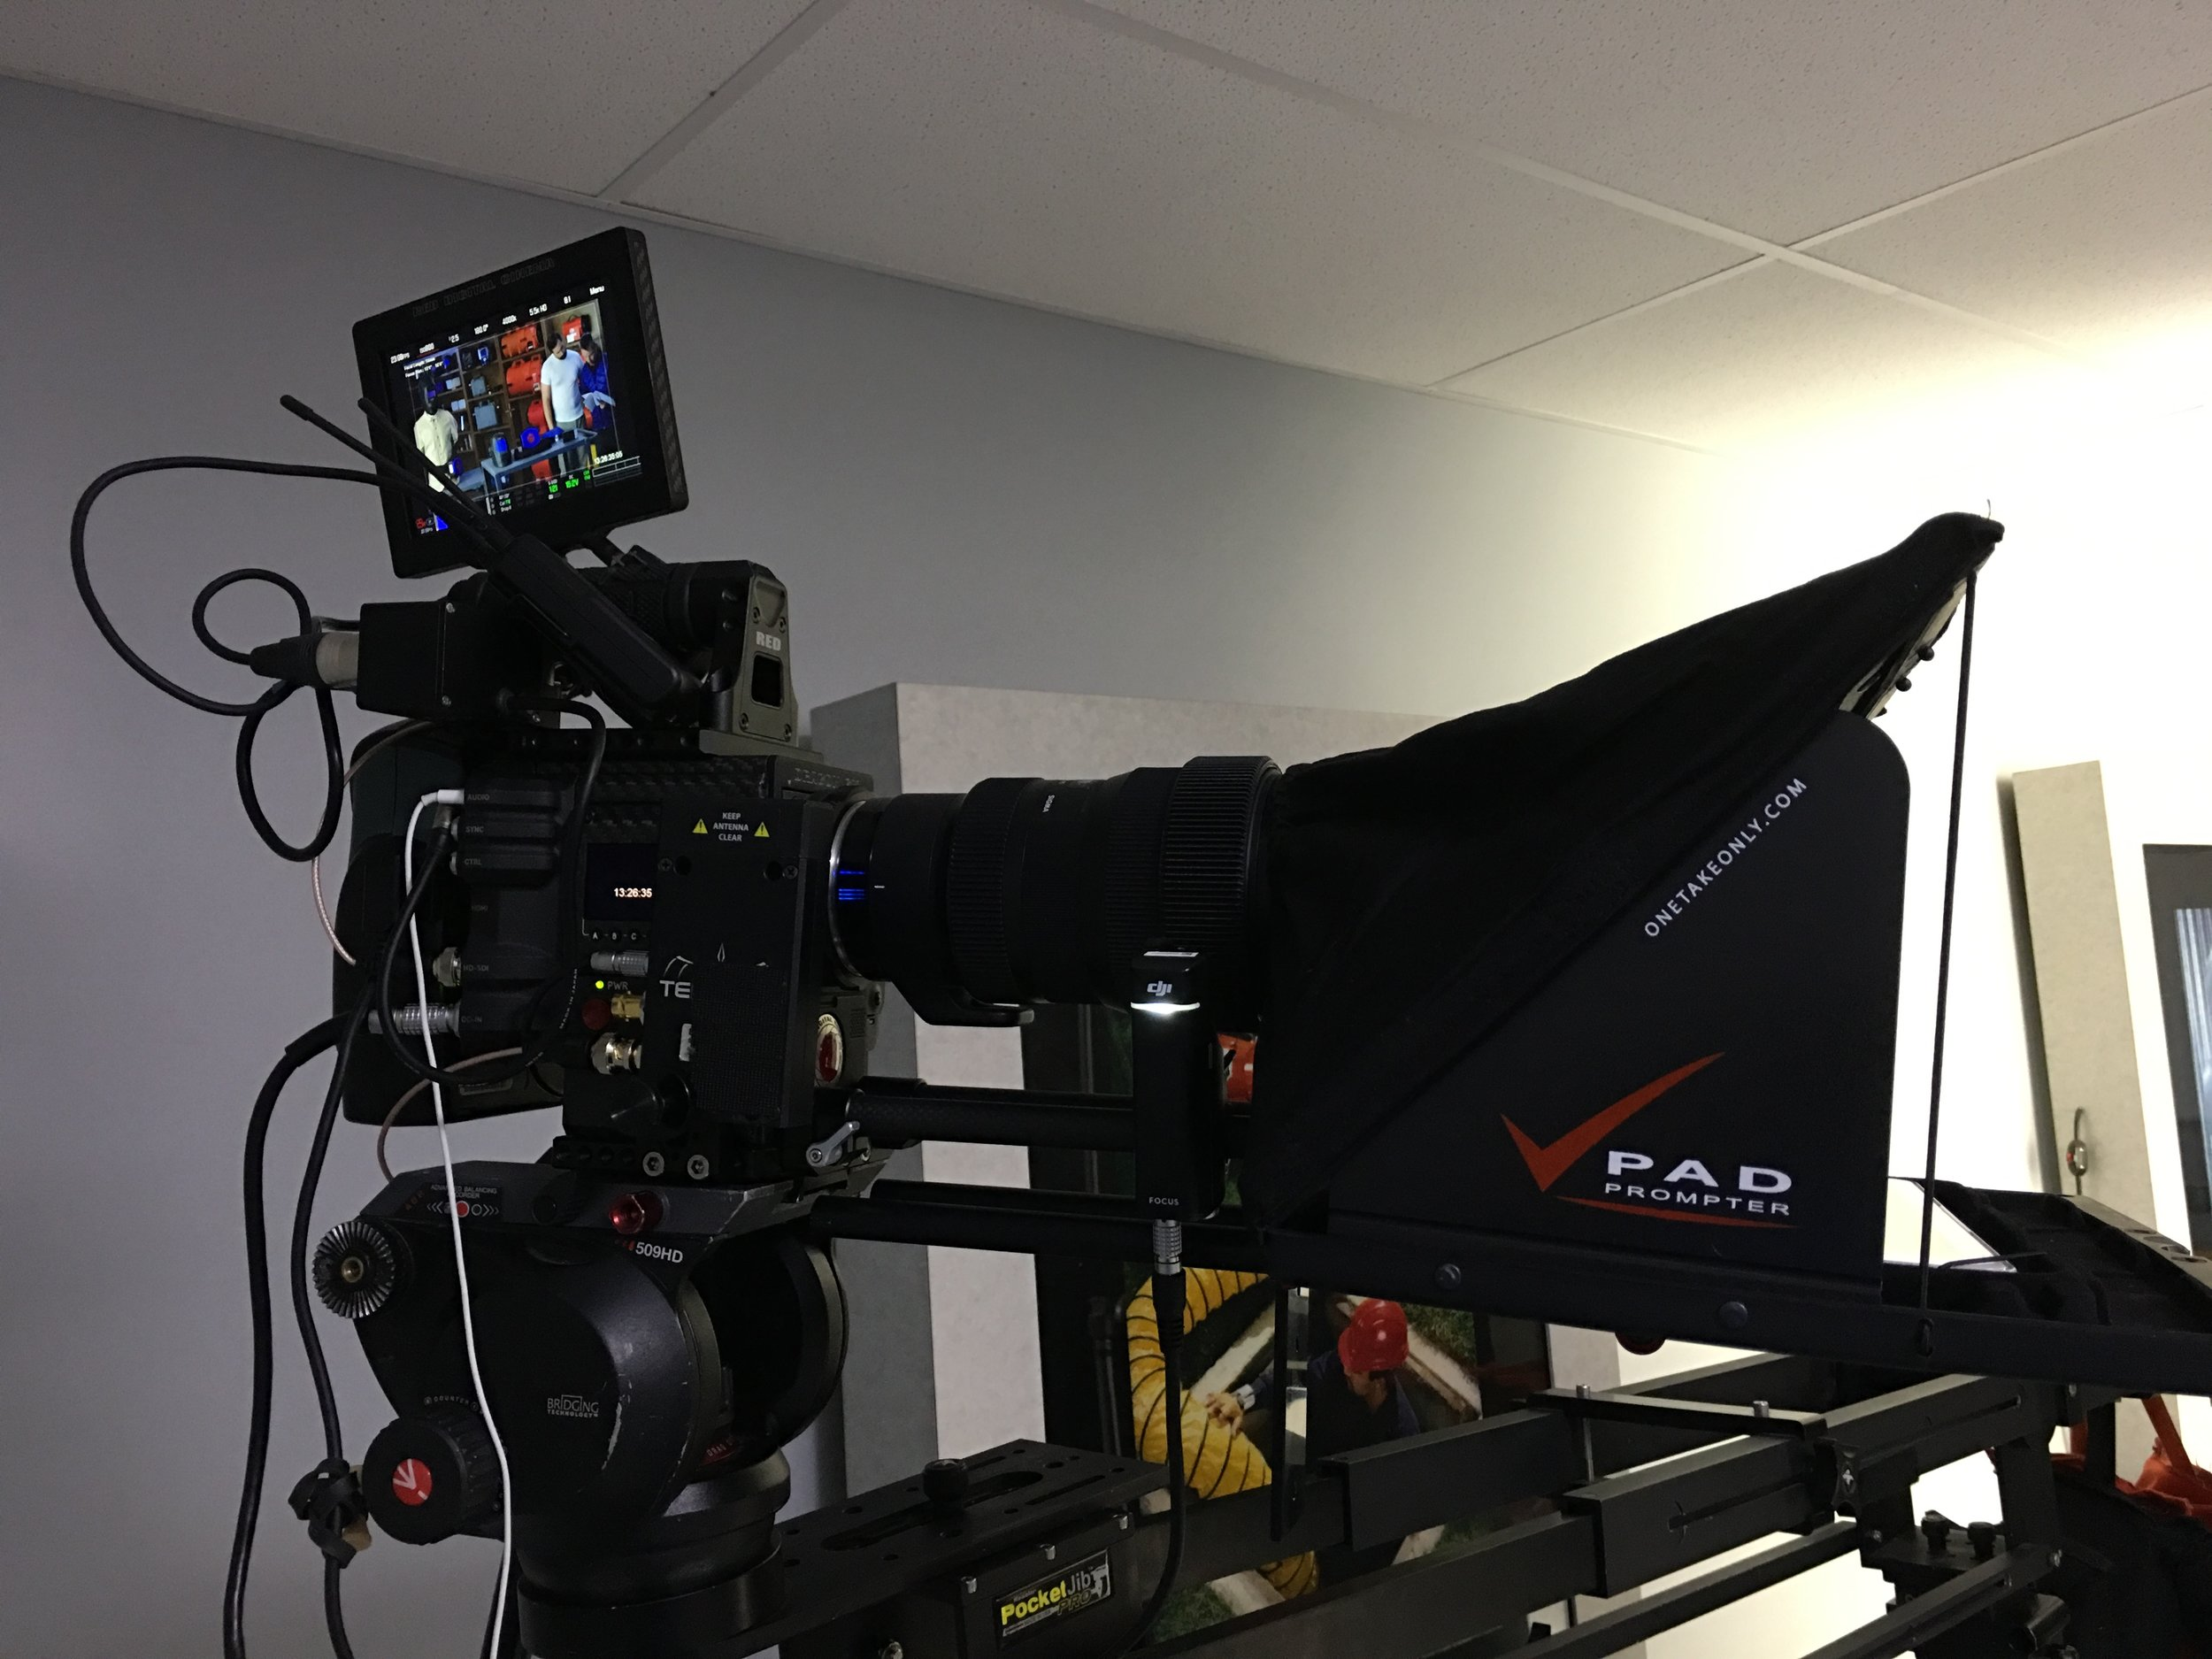 Carbon Fiber RED Weapon rigged with the Teleprompter.